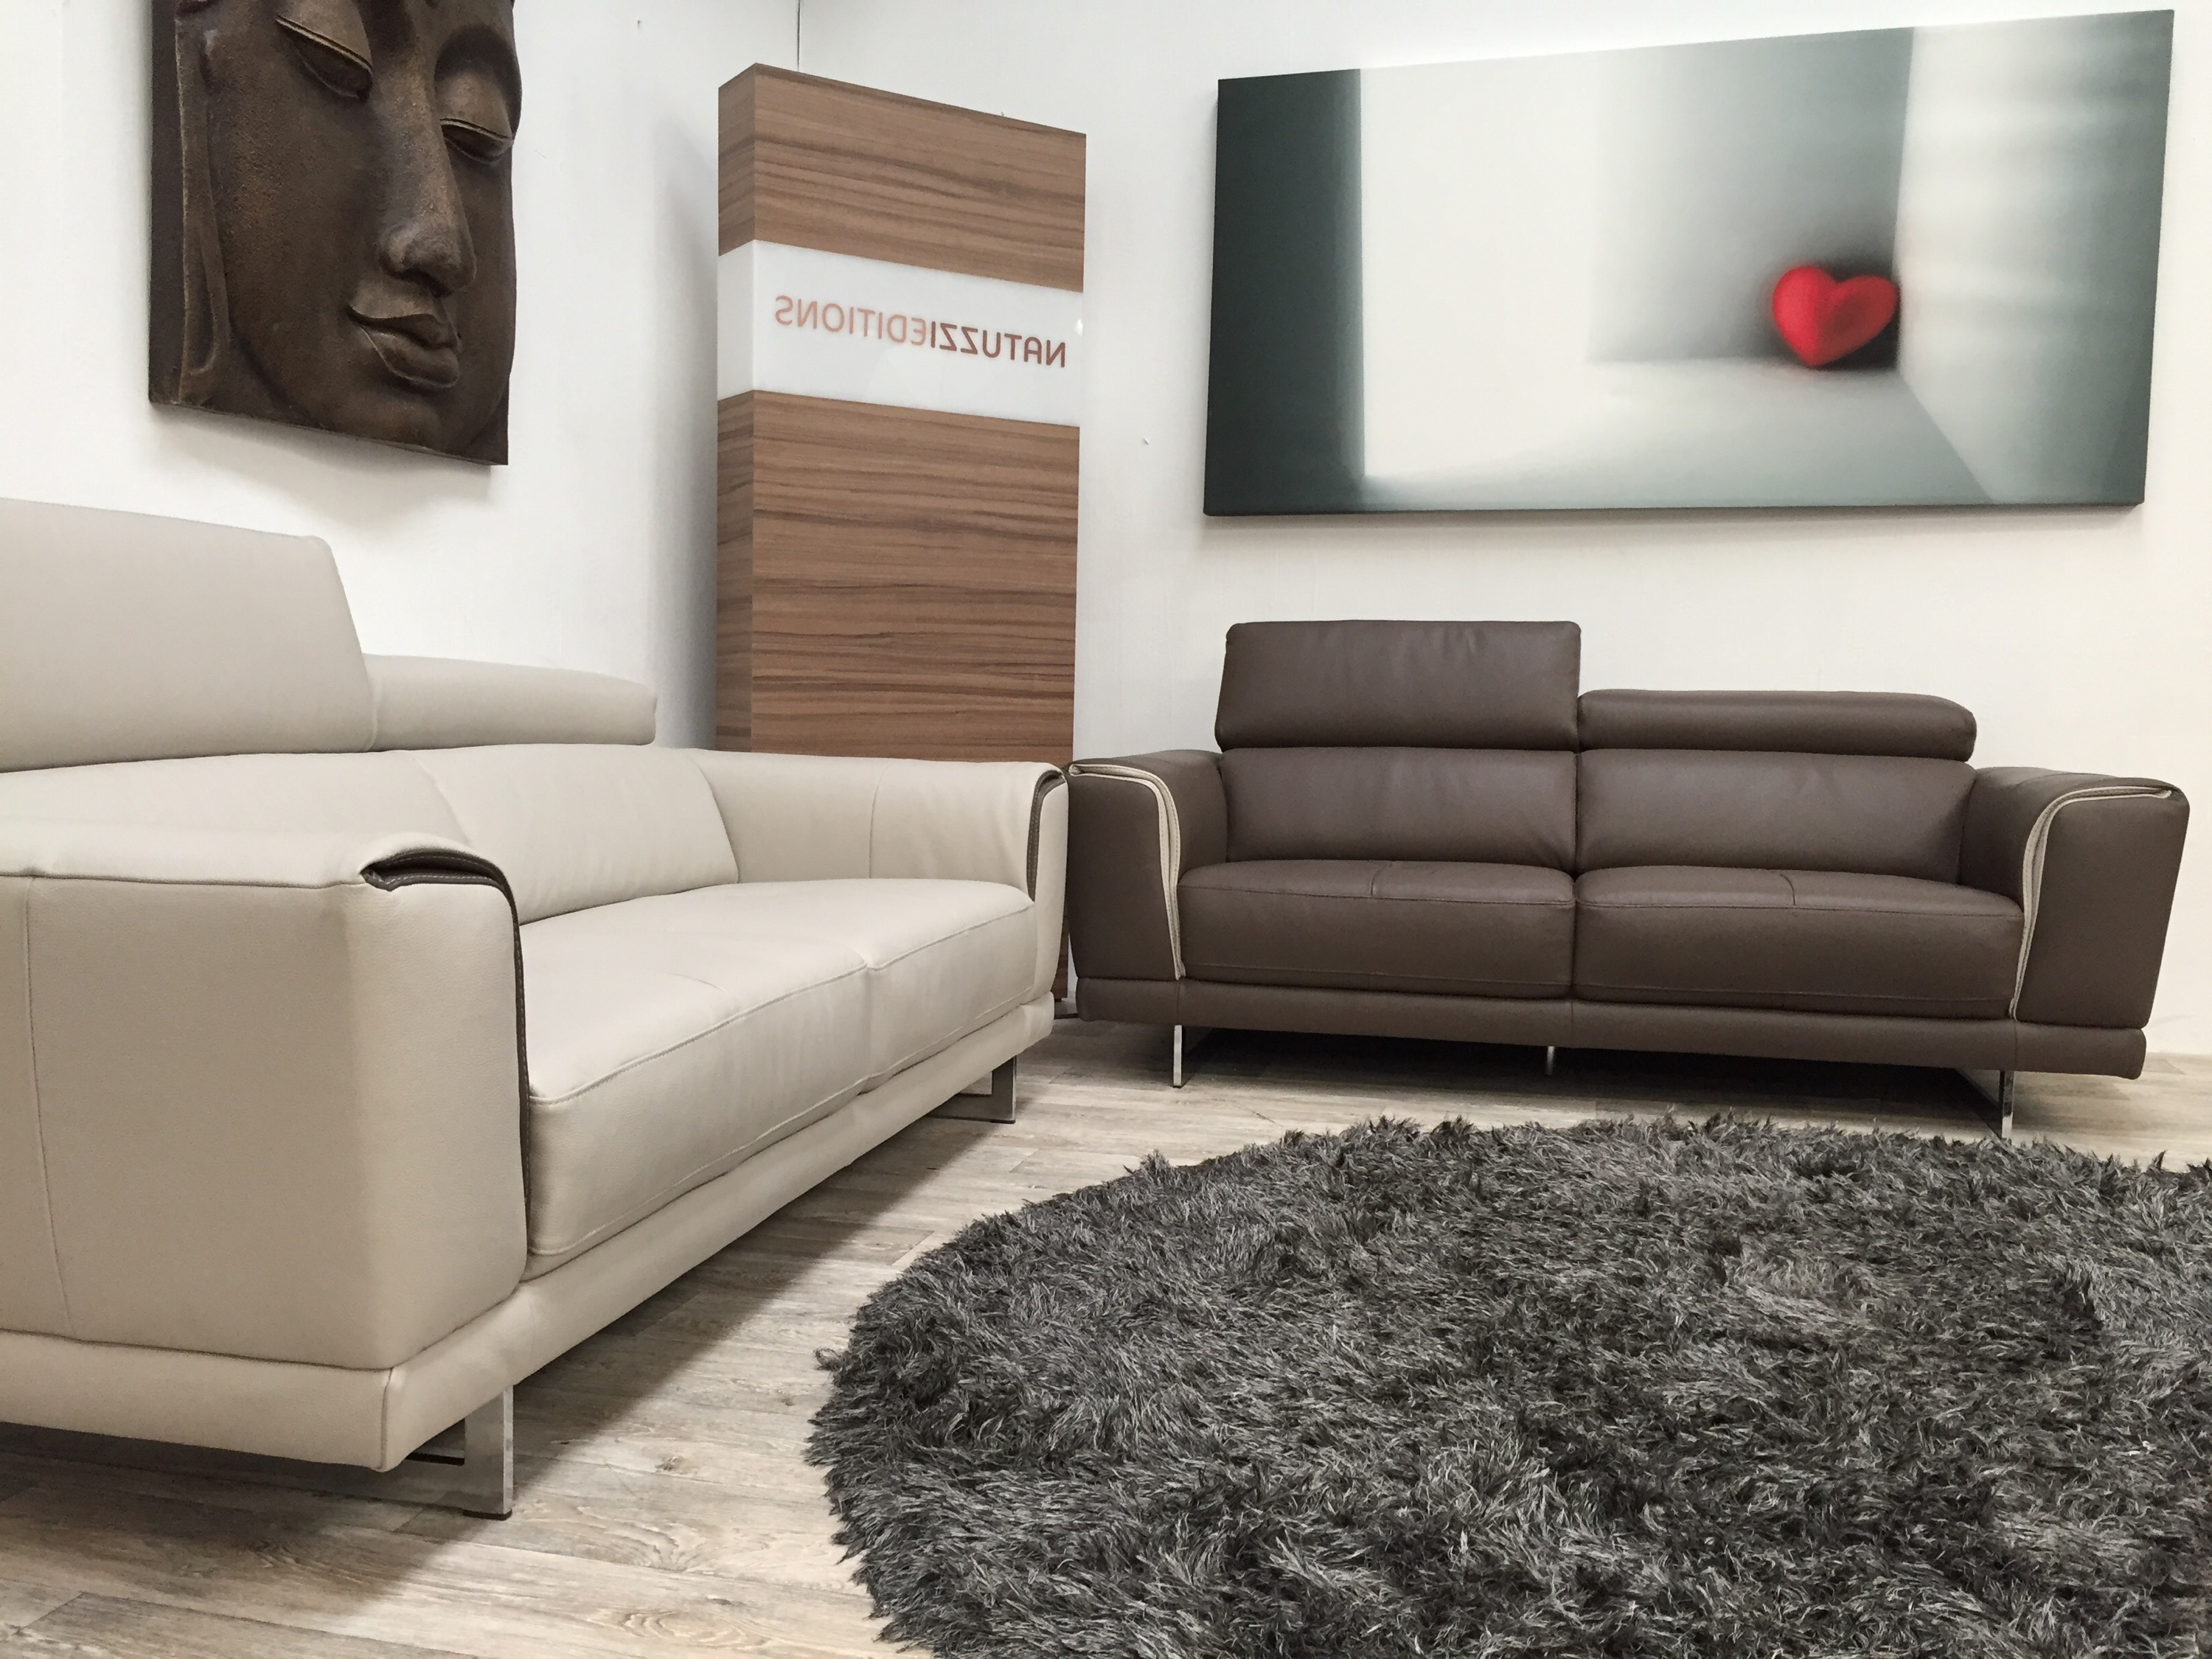 Newest Voted Number One Sofa And Furniture Store In The Manchester Area Within Manchester Sofas (View 15 of 20)